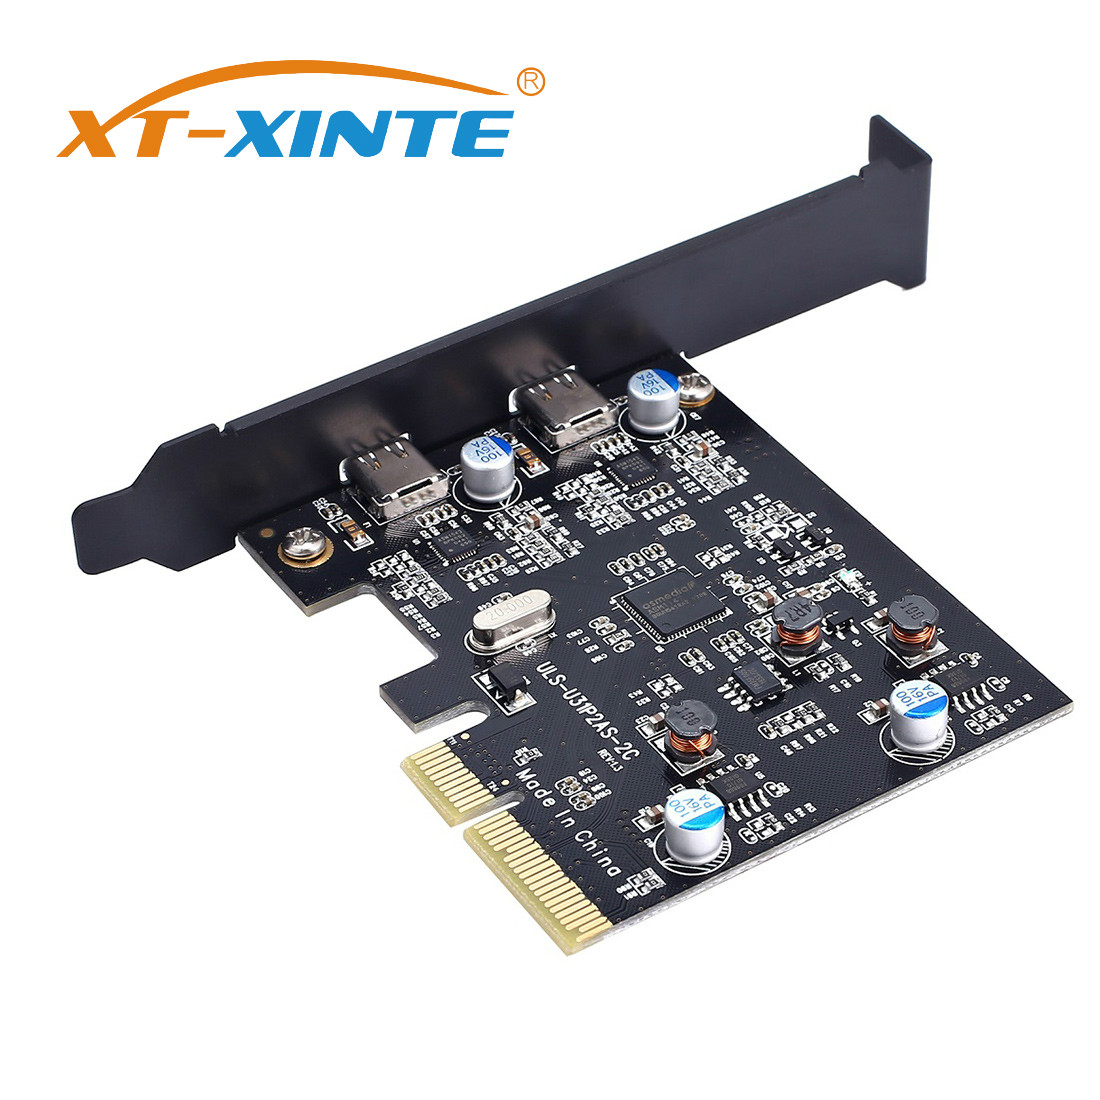 XT-XINTE Add On Cards USB 3.1 Dual 10Gbps 2x Type-C Port PCI Express  Controller Riser Card Expansion Adapter For Mac Pro Window